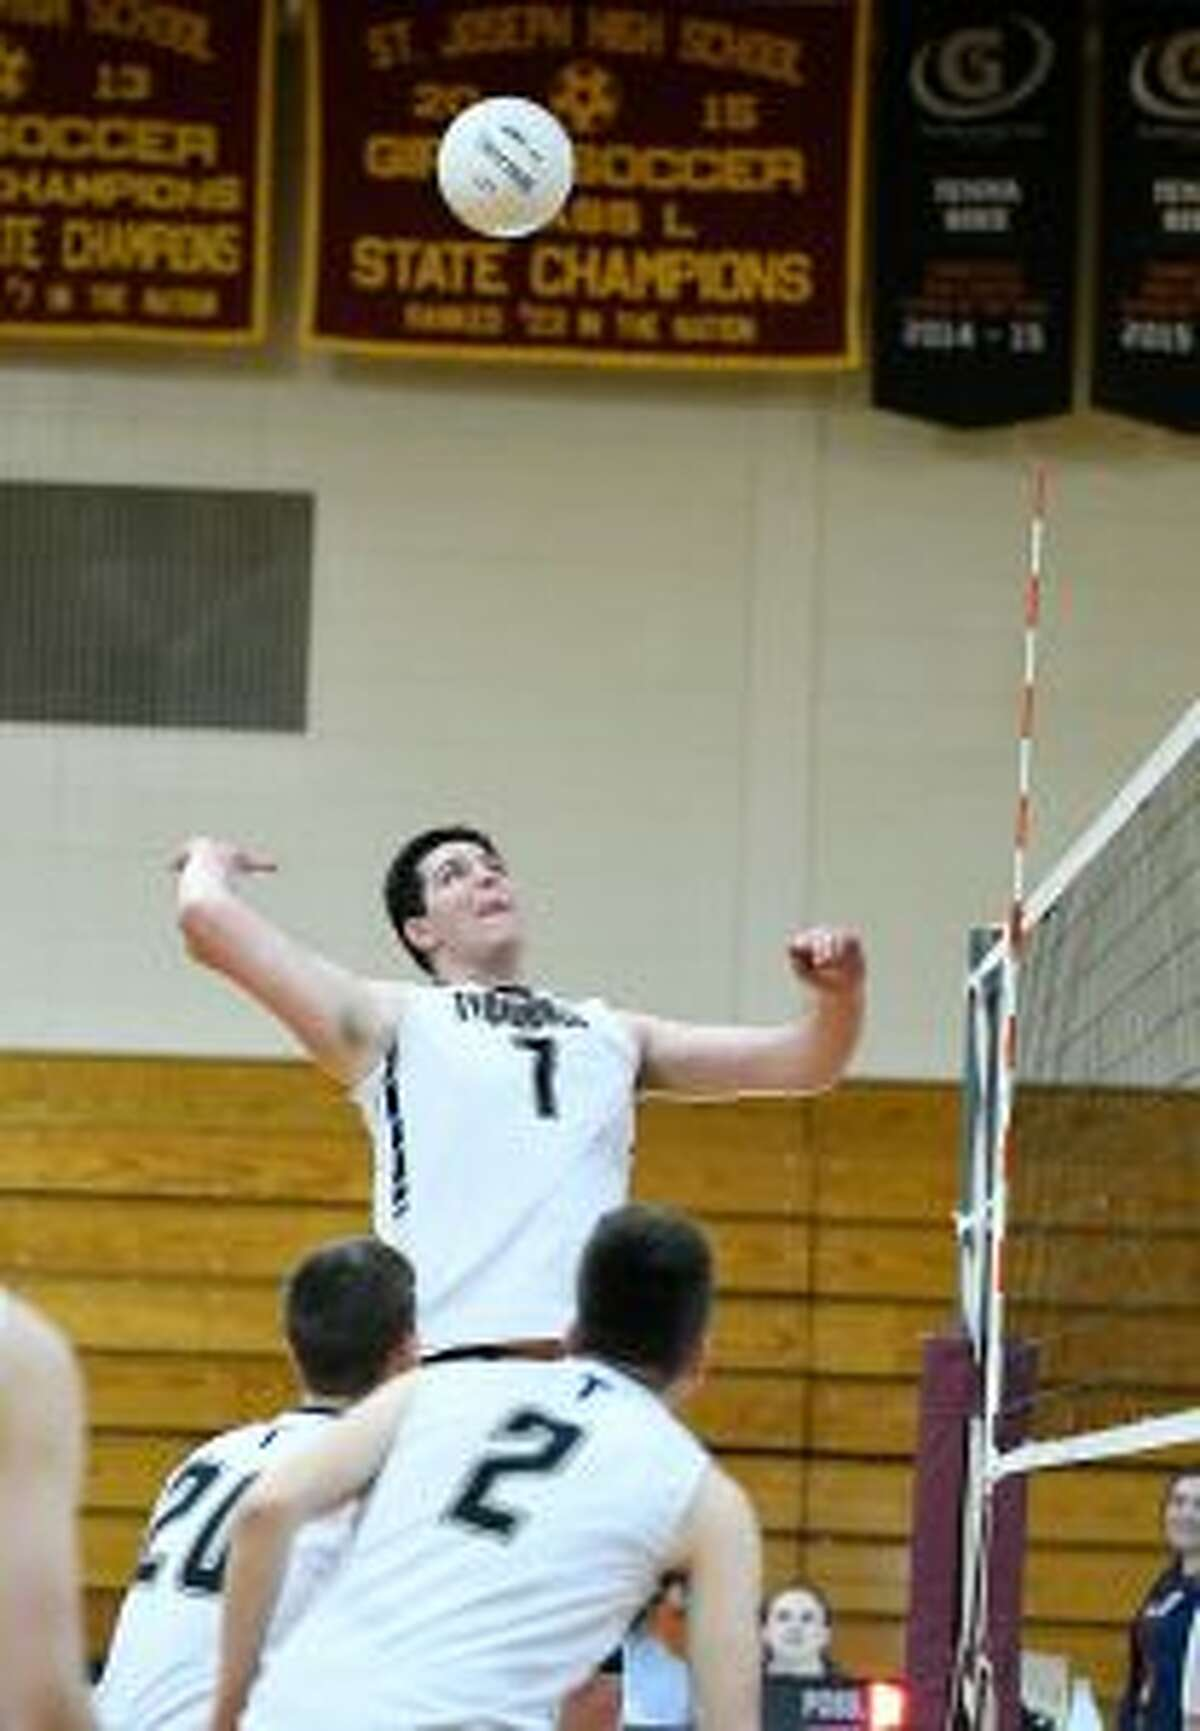 Trumbull's Ron Rufino is a top hitter. - David G. Whitham photo